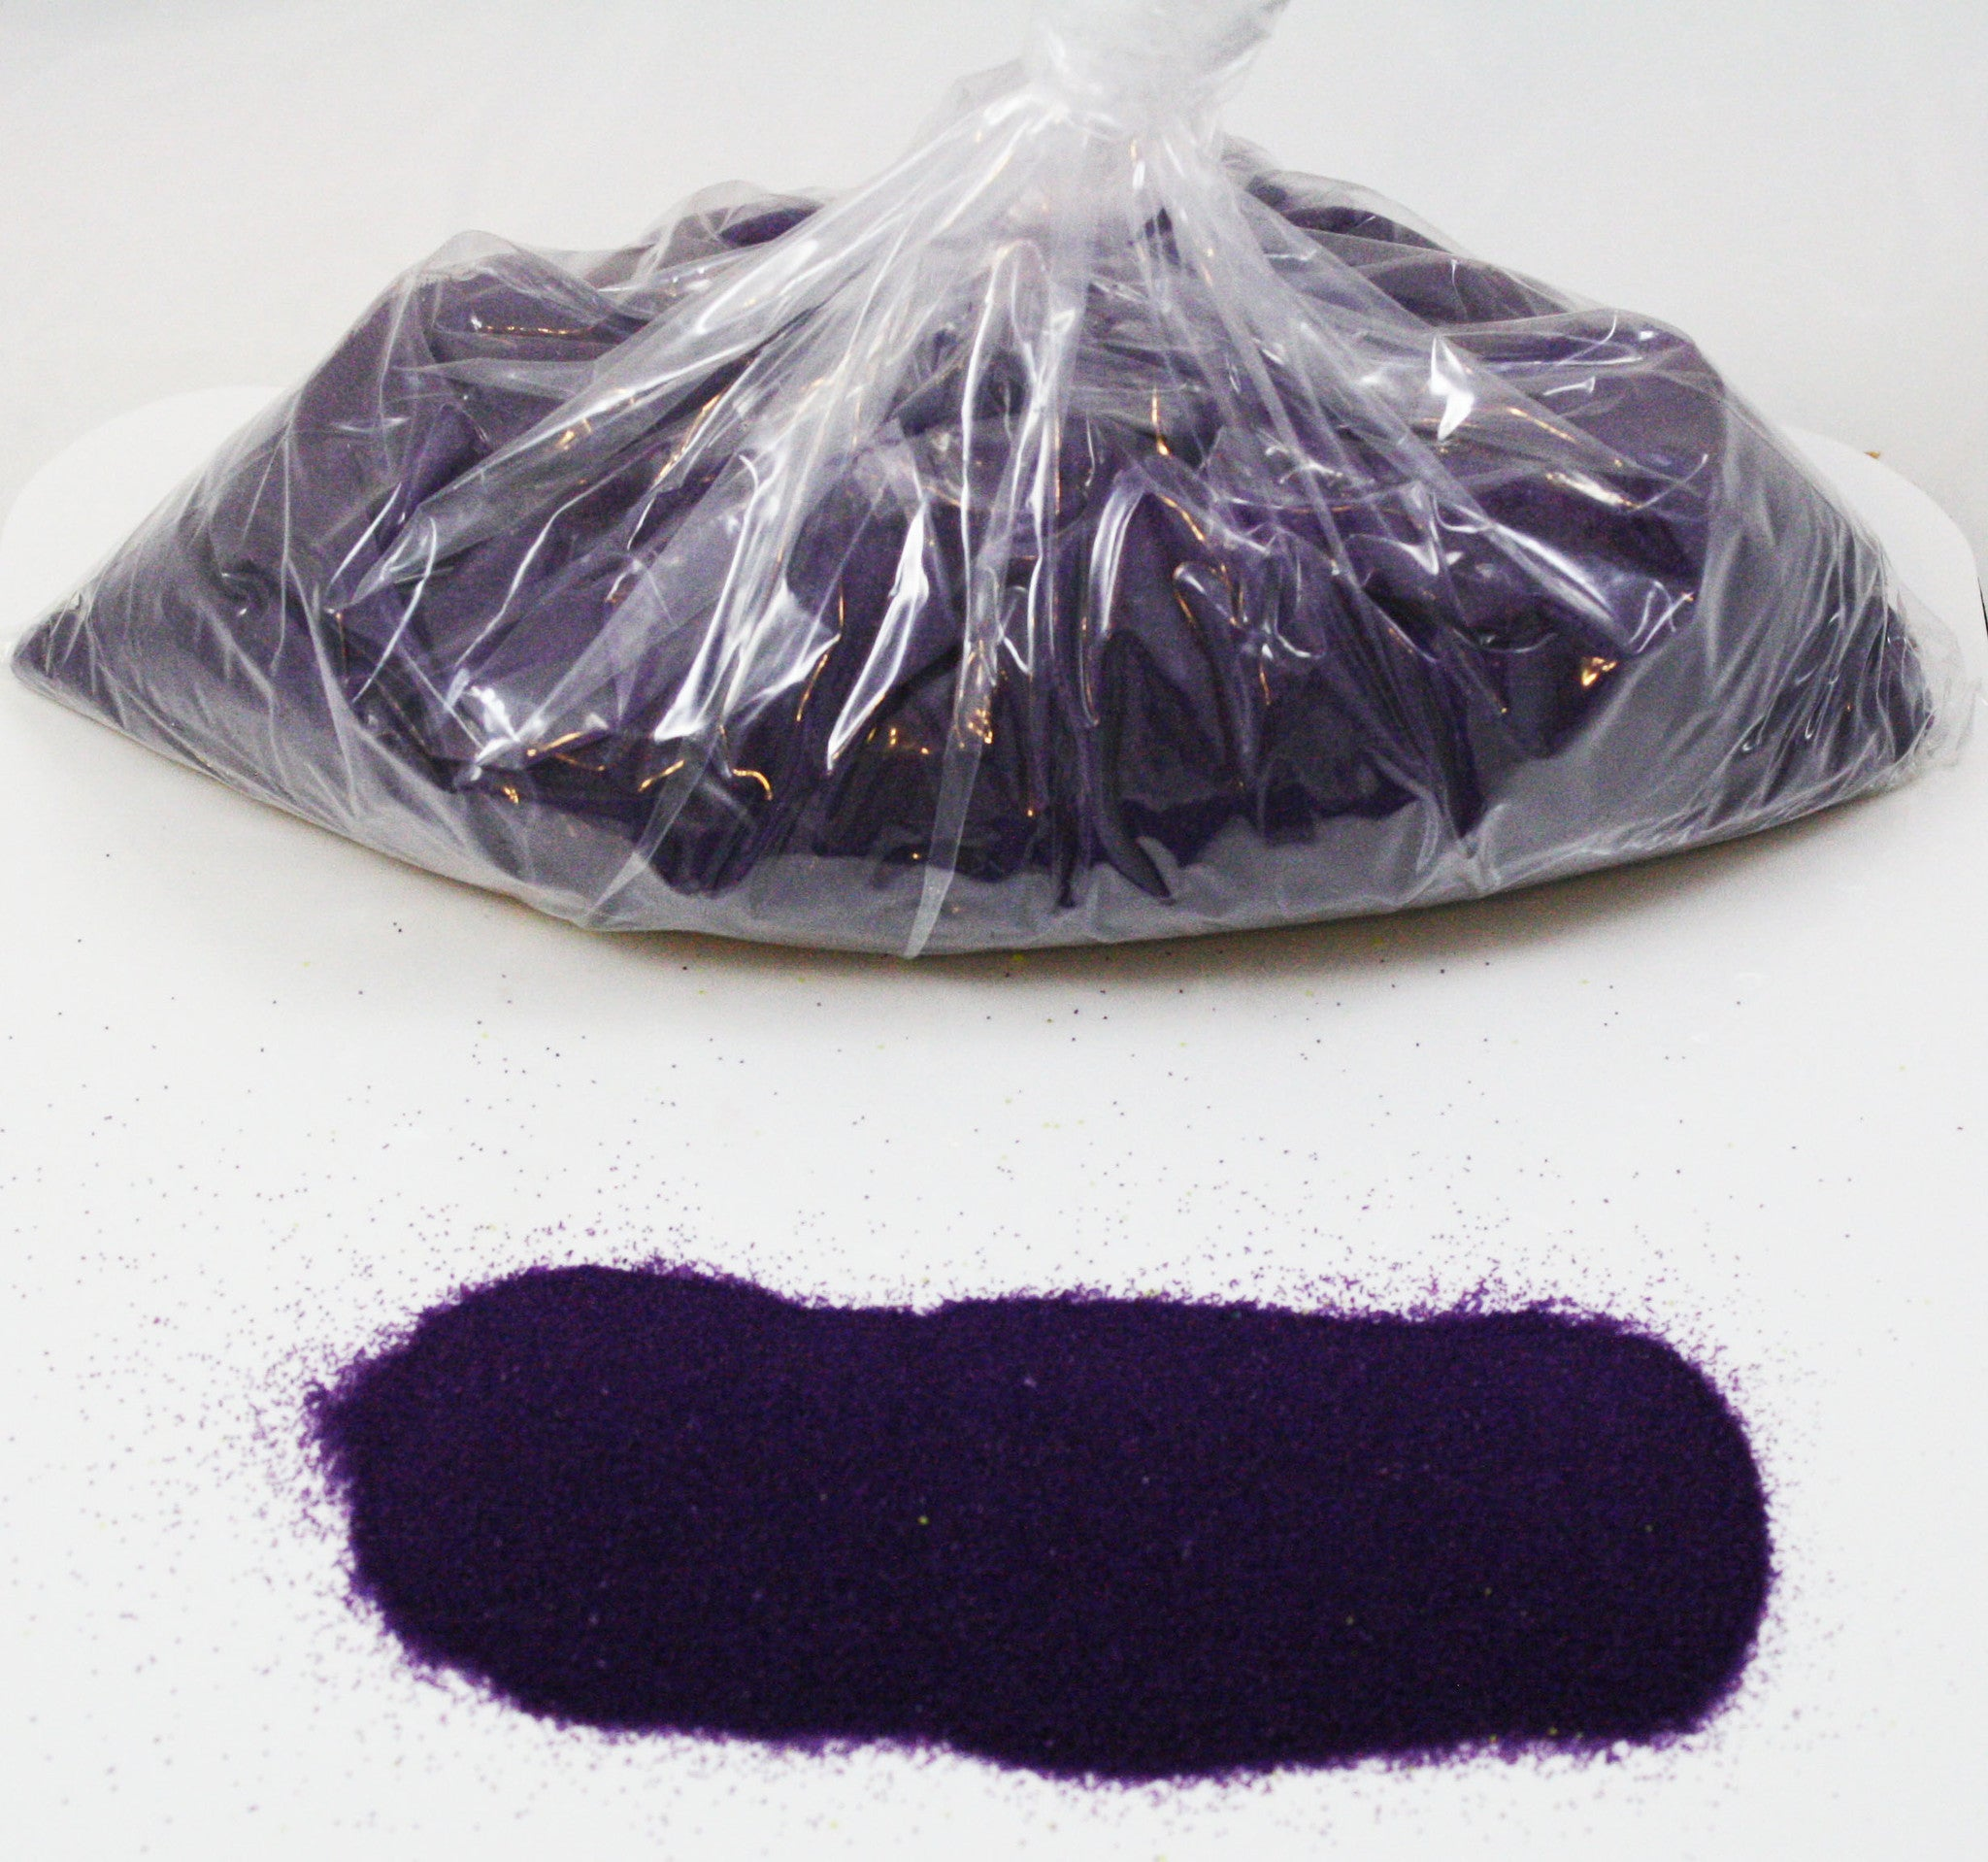 Neon Purple Space Sand: 5lbs of Bulk Hydrophobic Sand - Off The Wall Toys and Gifts